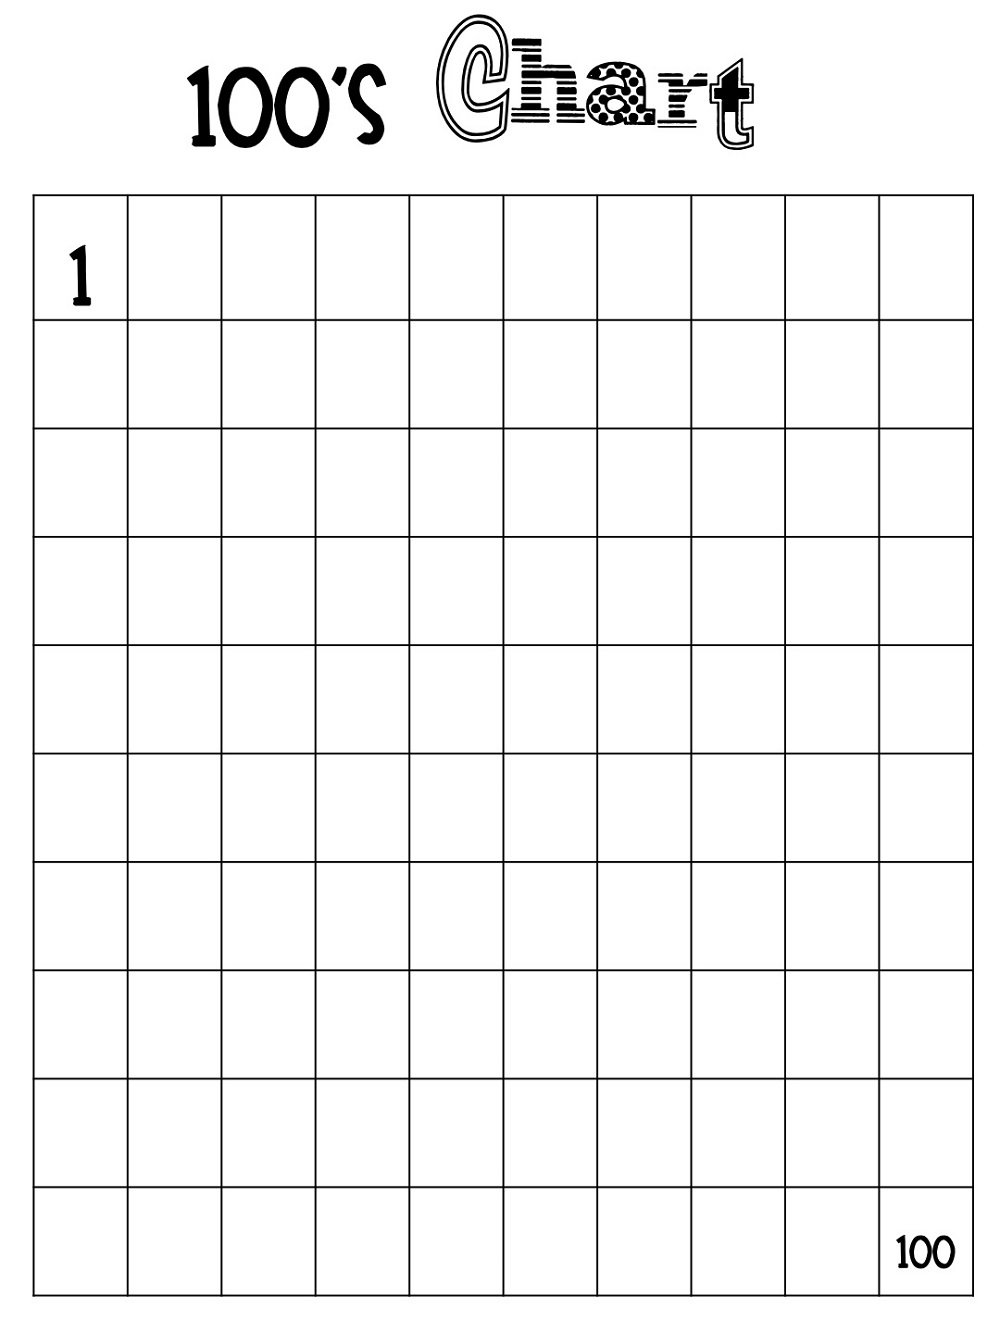 Blank Number Chart 1-100 Worksheets | Kiddo Shelter | Free Printable Blank 100 Chart Worksheets